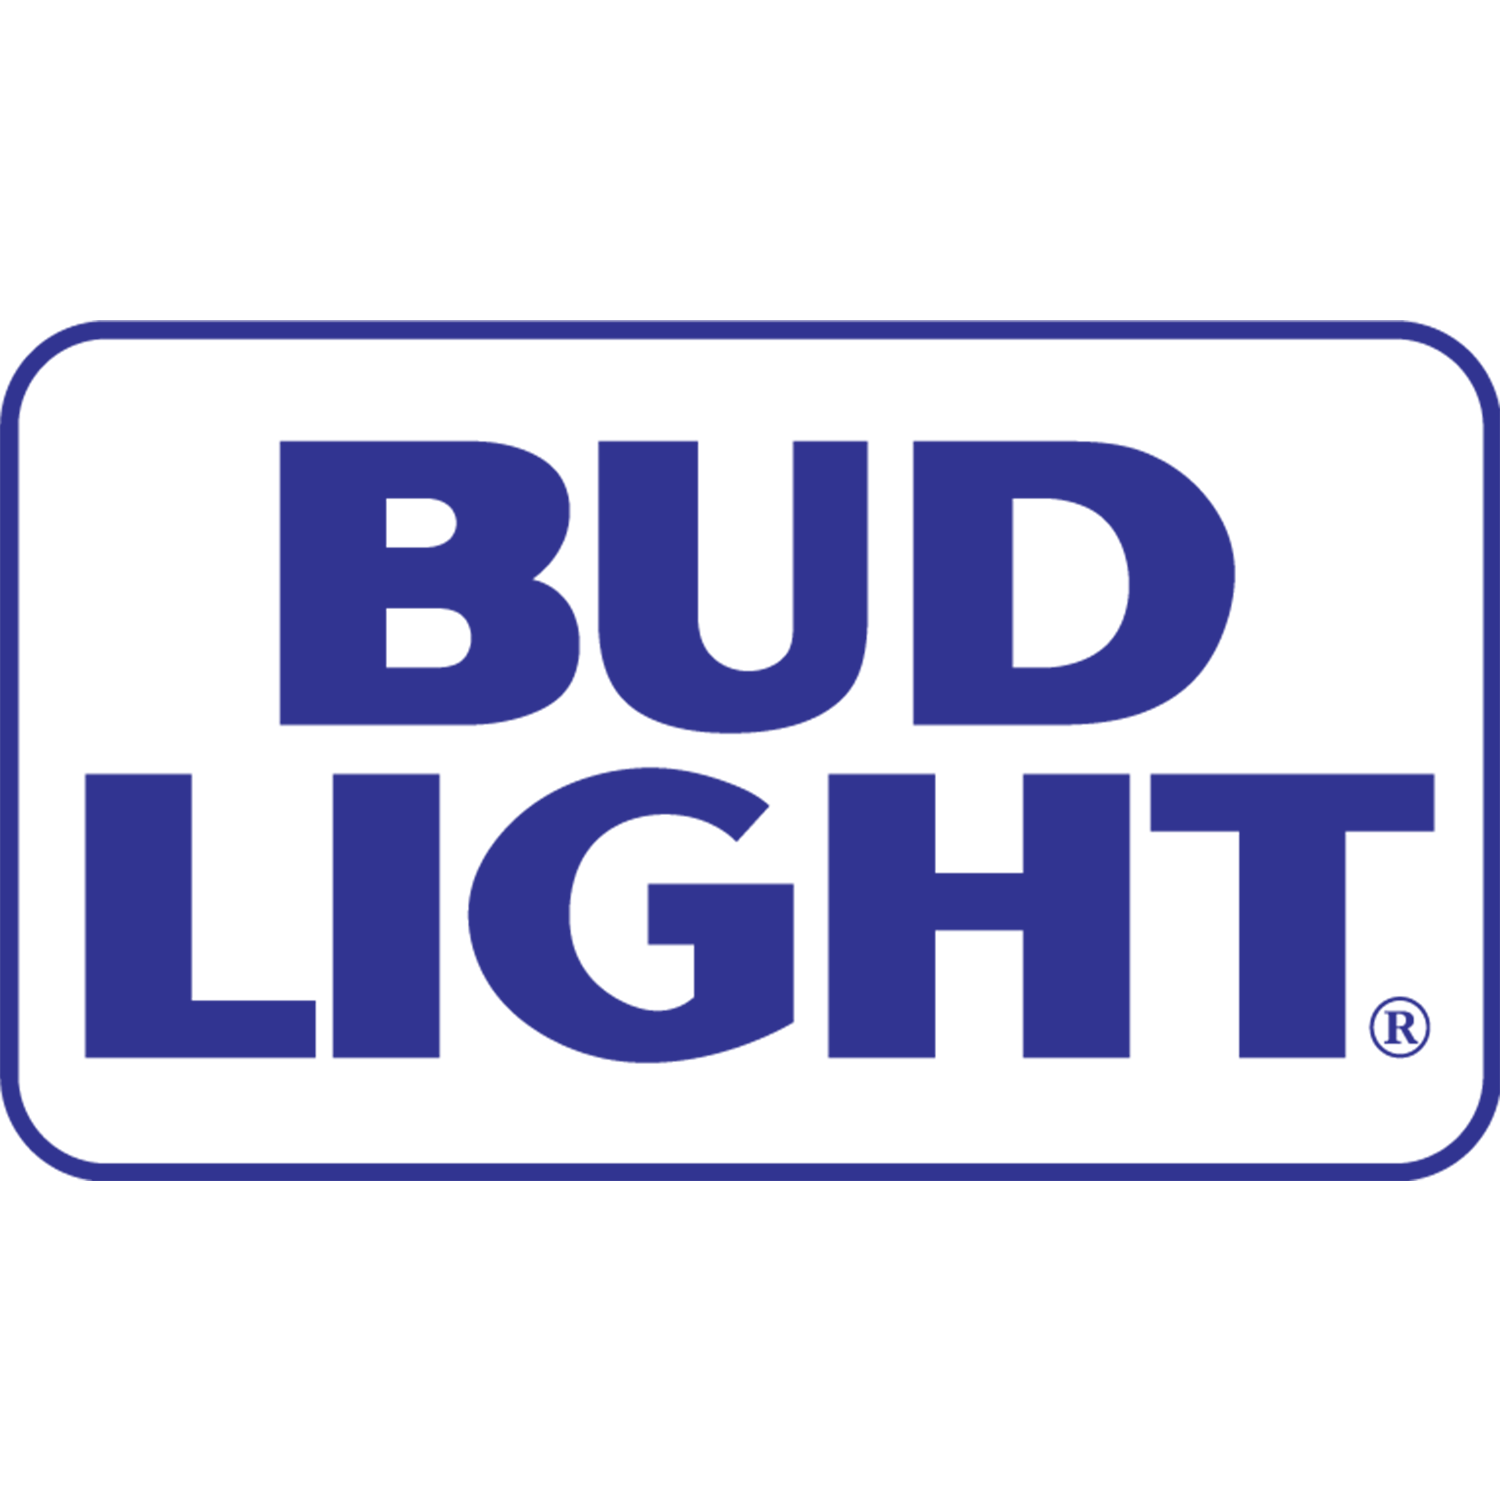 bud light transparent sq.png